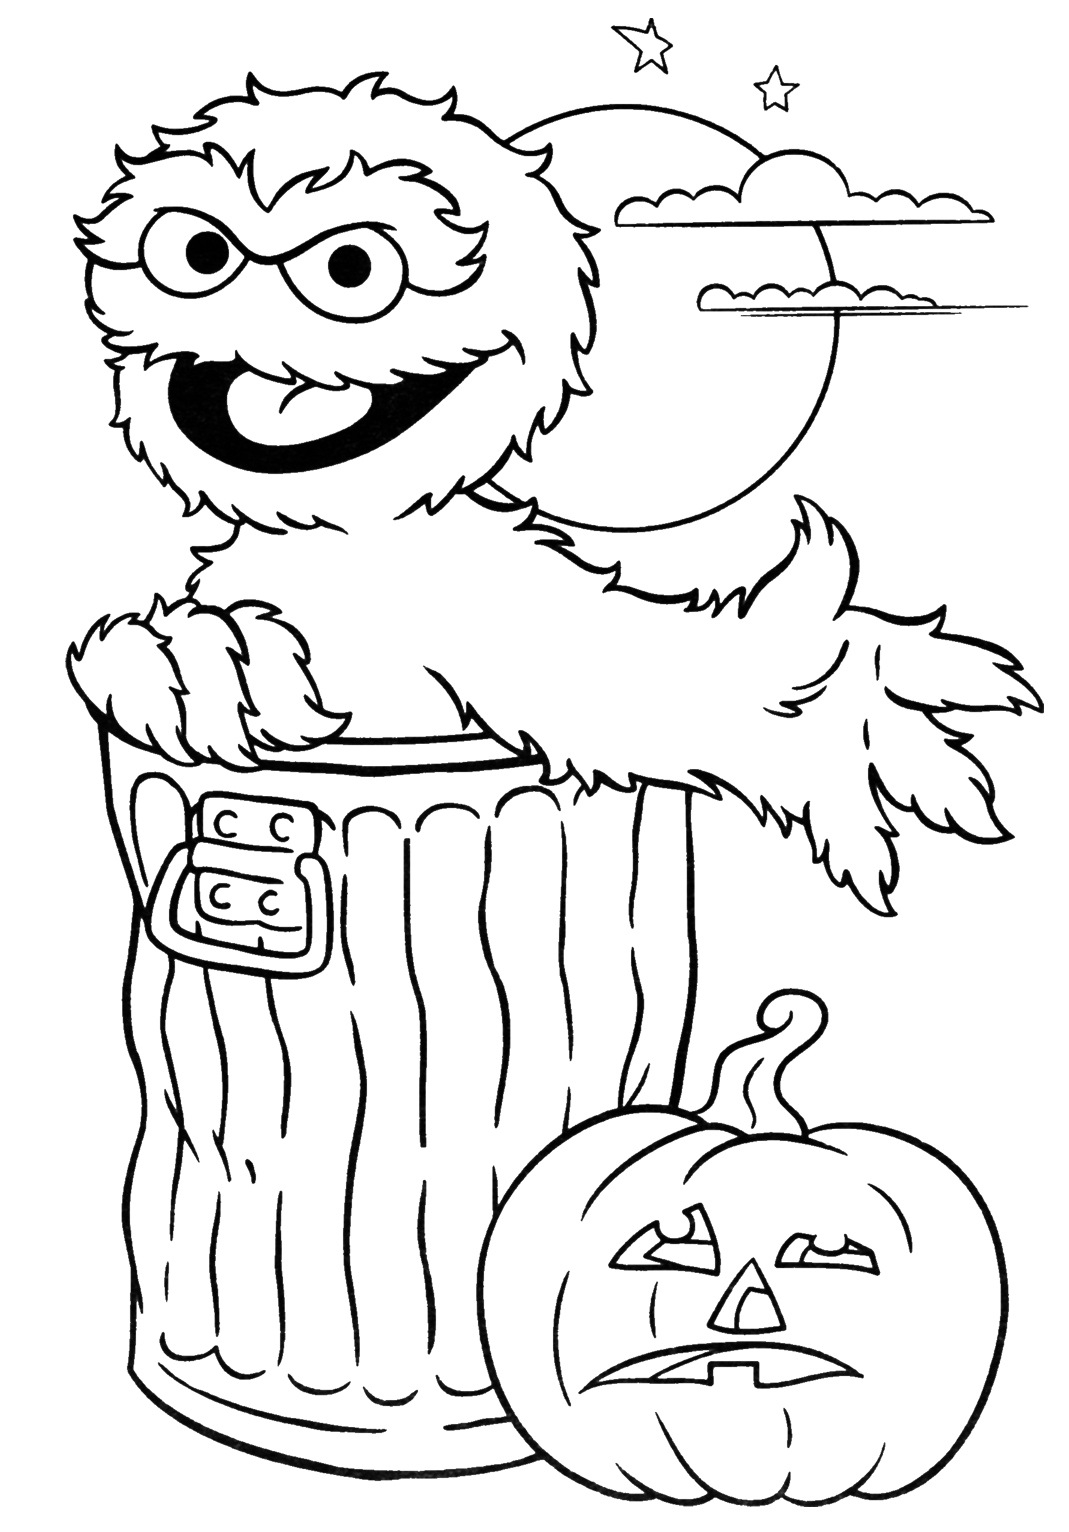 1069x1532 Printable Halloween Coloring Pages Free Coloring Pages Download